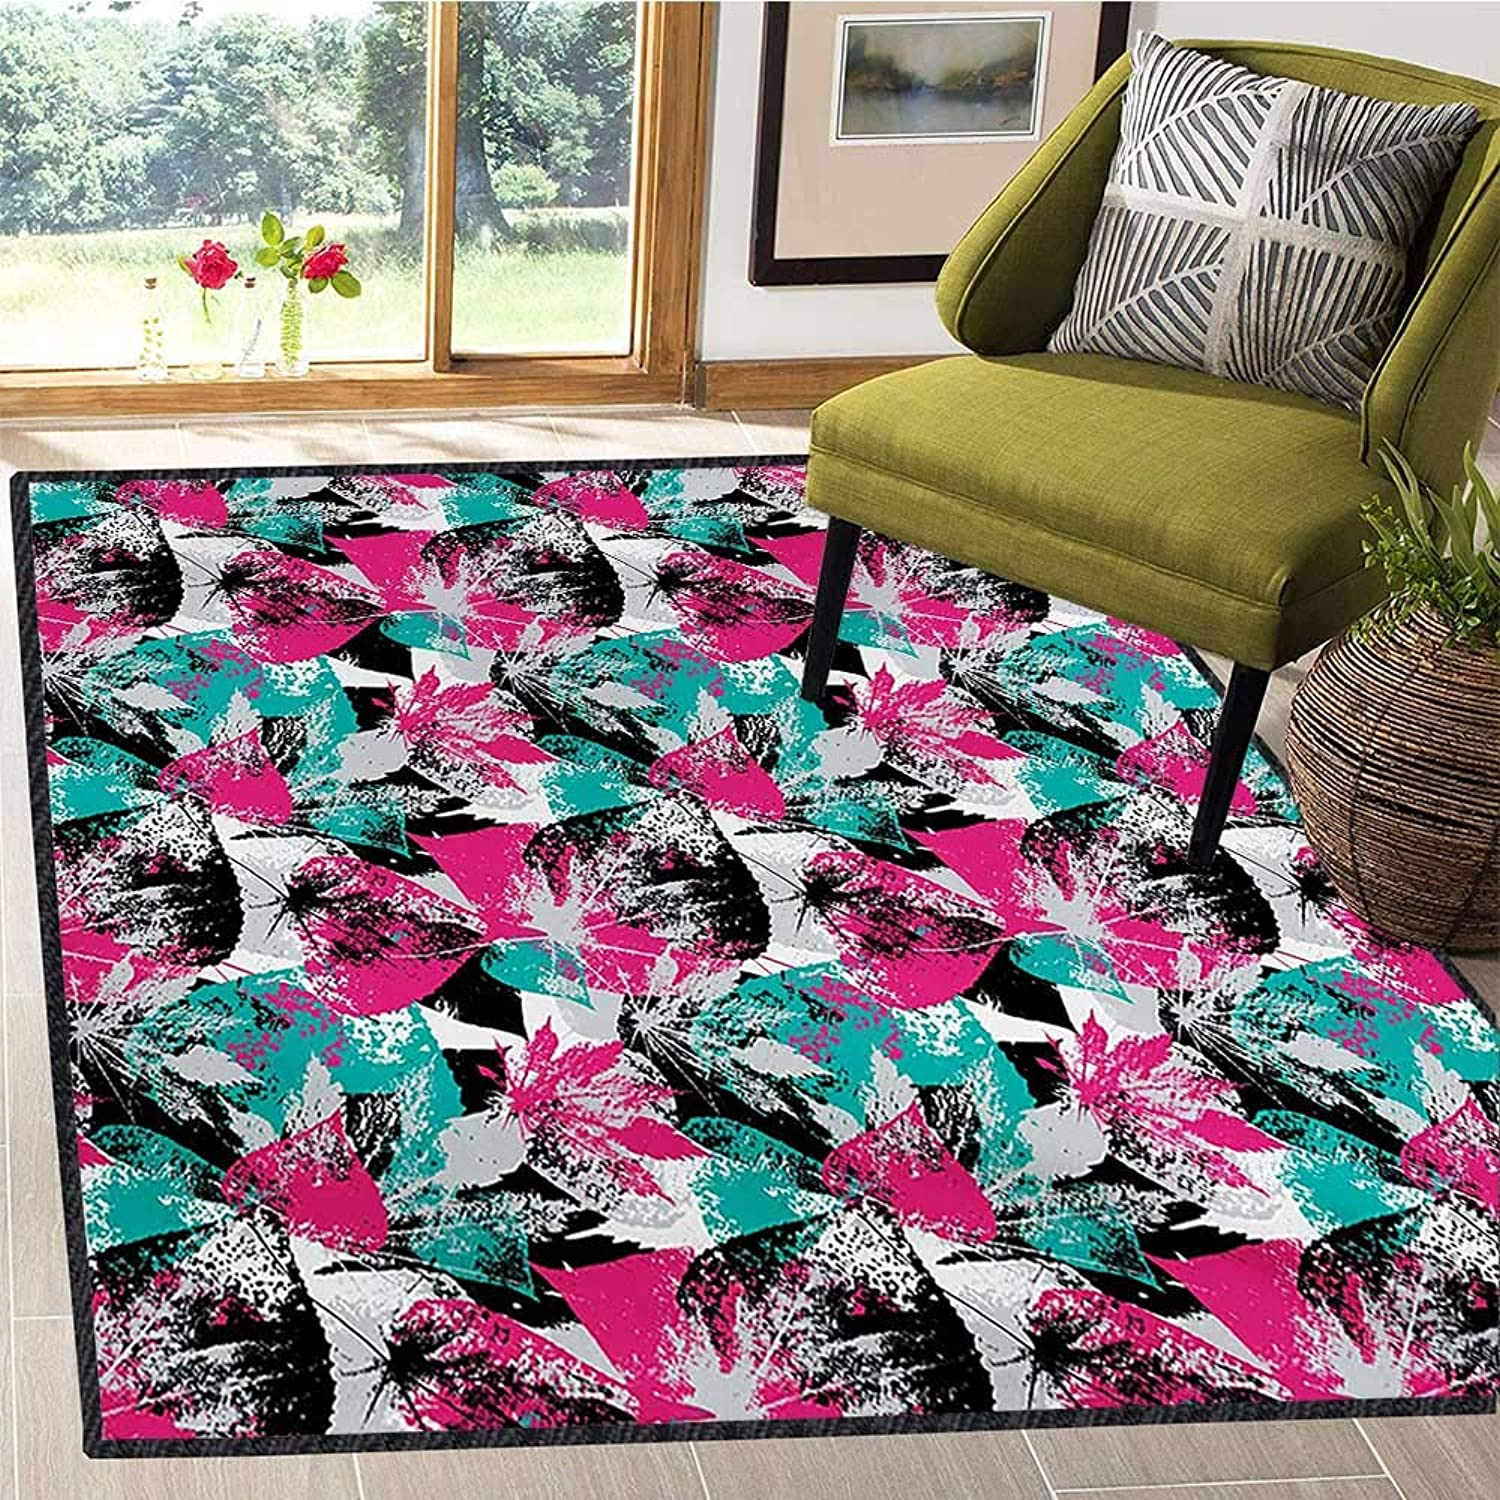 Grunge, Door Mats for Inside, Abstract Leaves with Various Designs Nature Ornamental Blossoming Earth, Door Mat Outside 5x6 Ft Hot Pink Seafoam Black